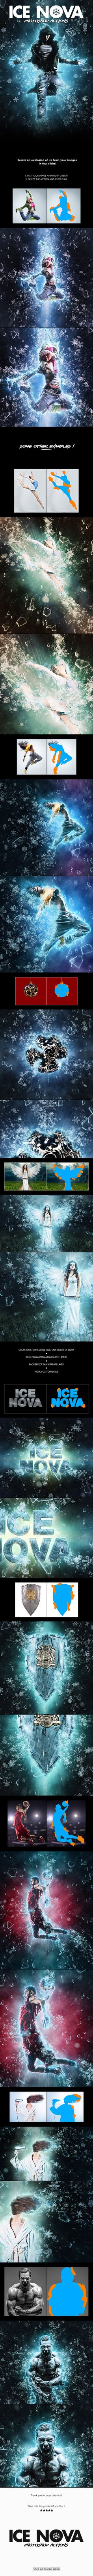 Ice Nova - Photoshop Action - Photo Effects Actions